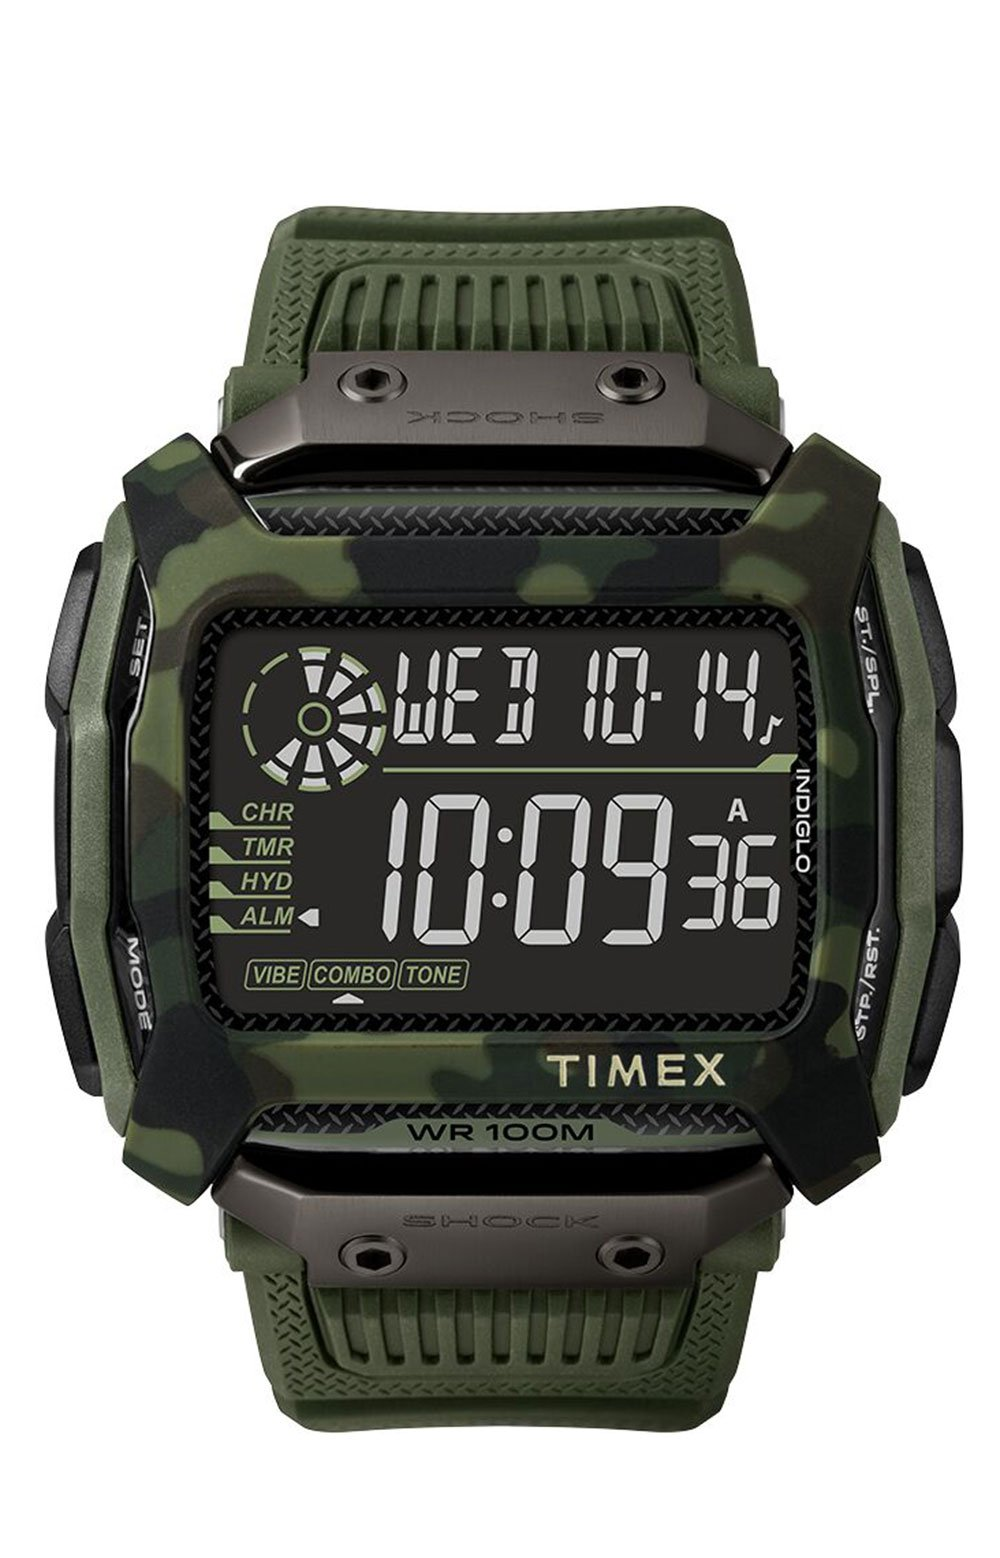 (TW5M20400JV) Command Shock 54mm Resin Strap Watch